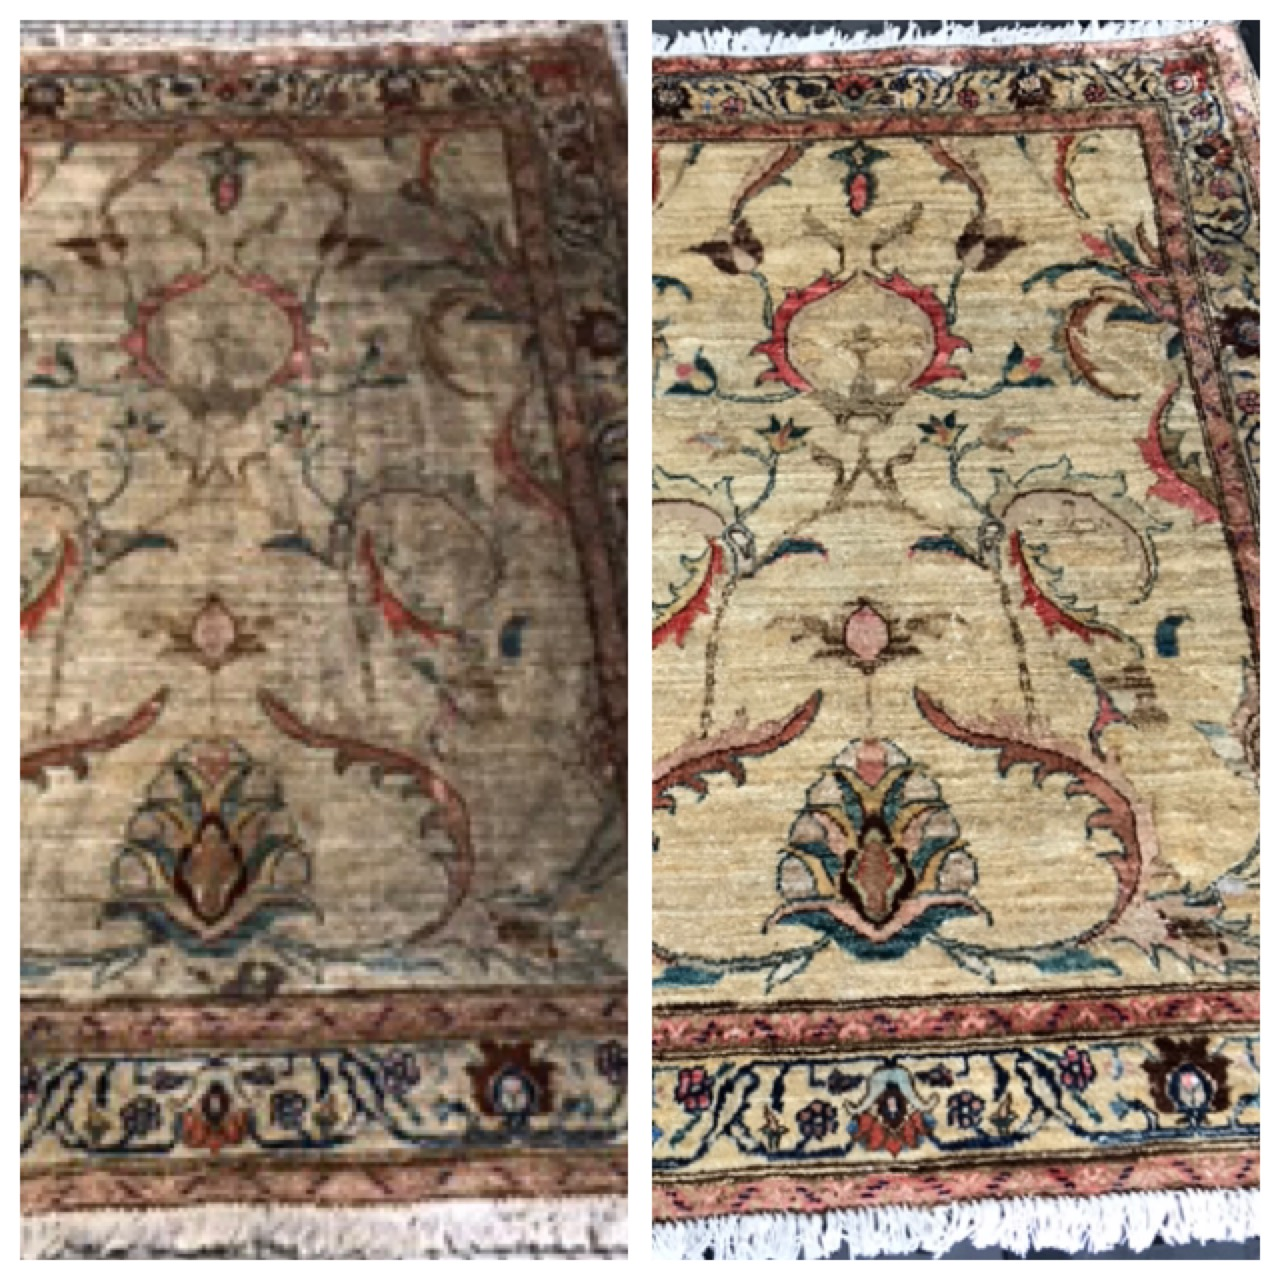 Rug Cleaning Before & After